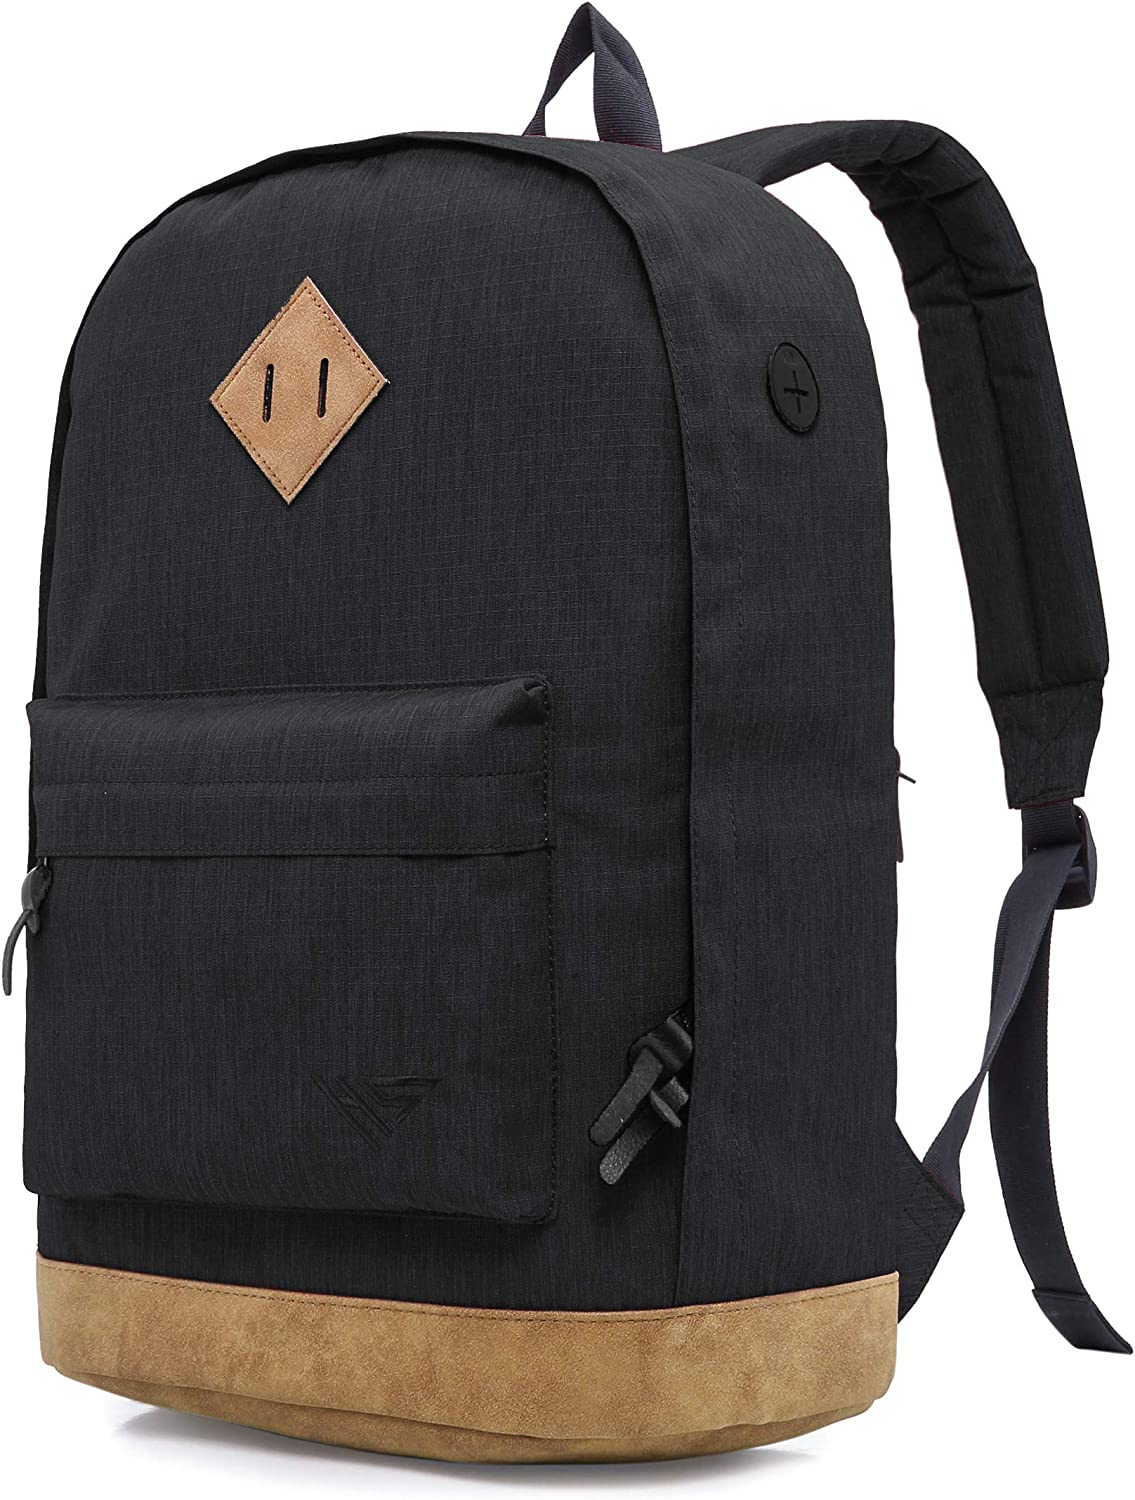 Water Resistant Backpack for College